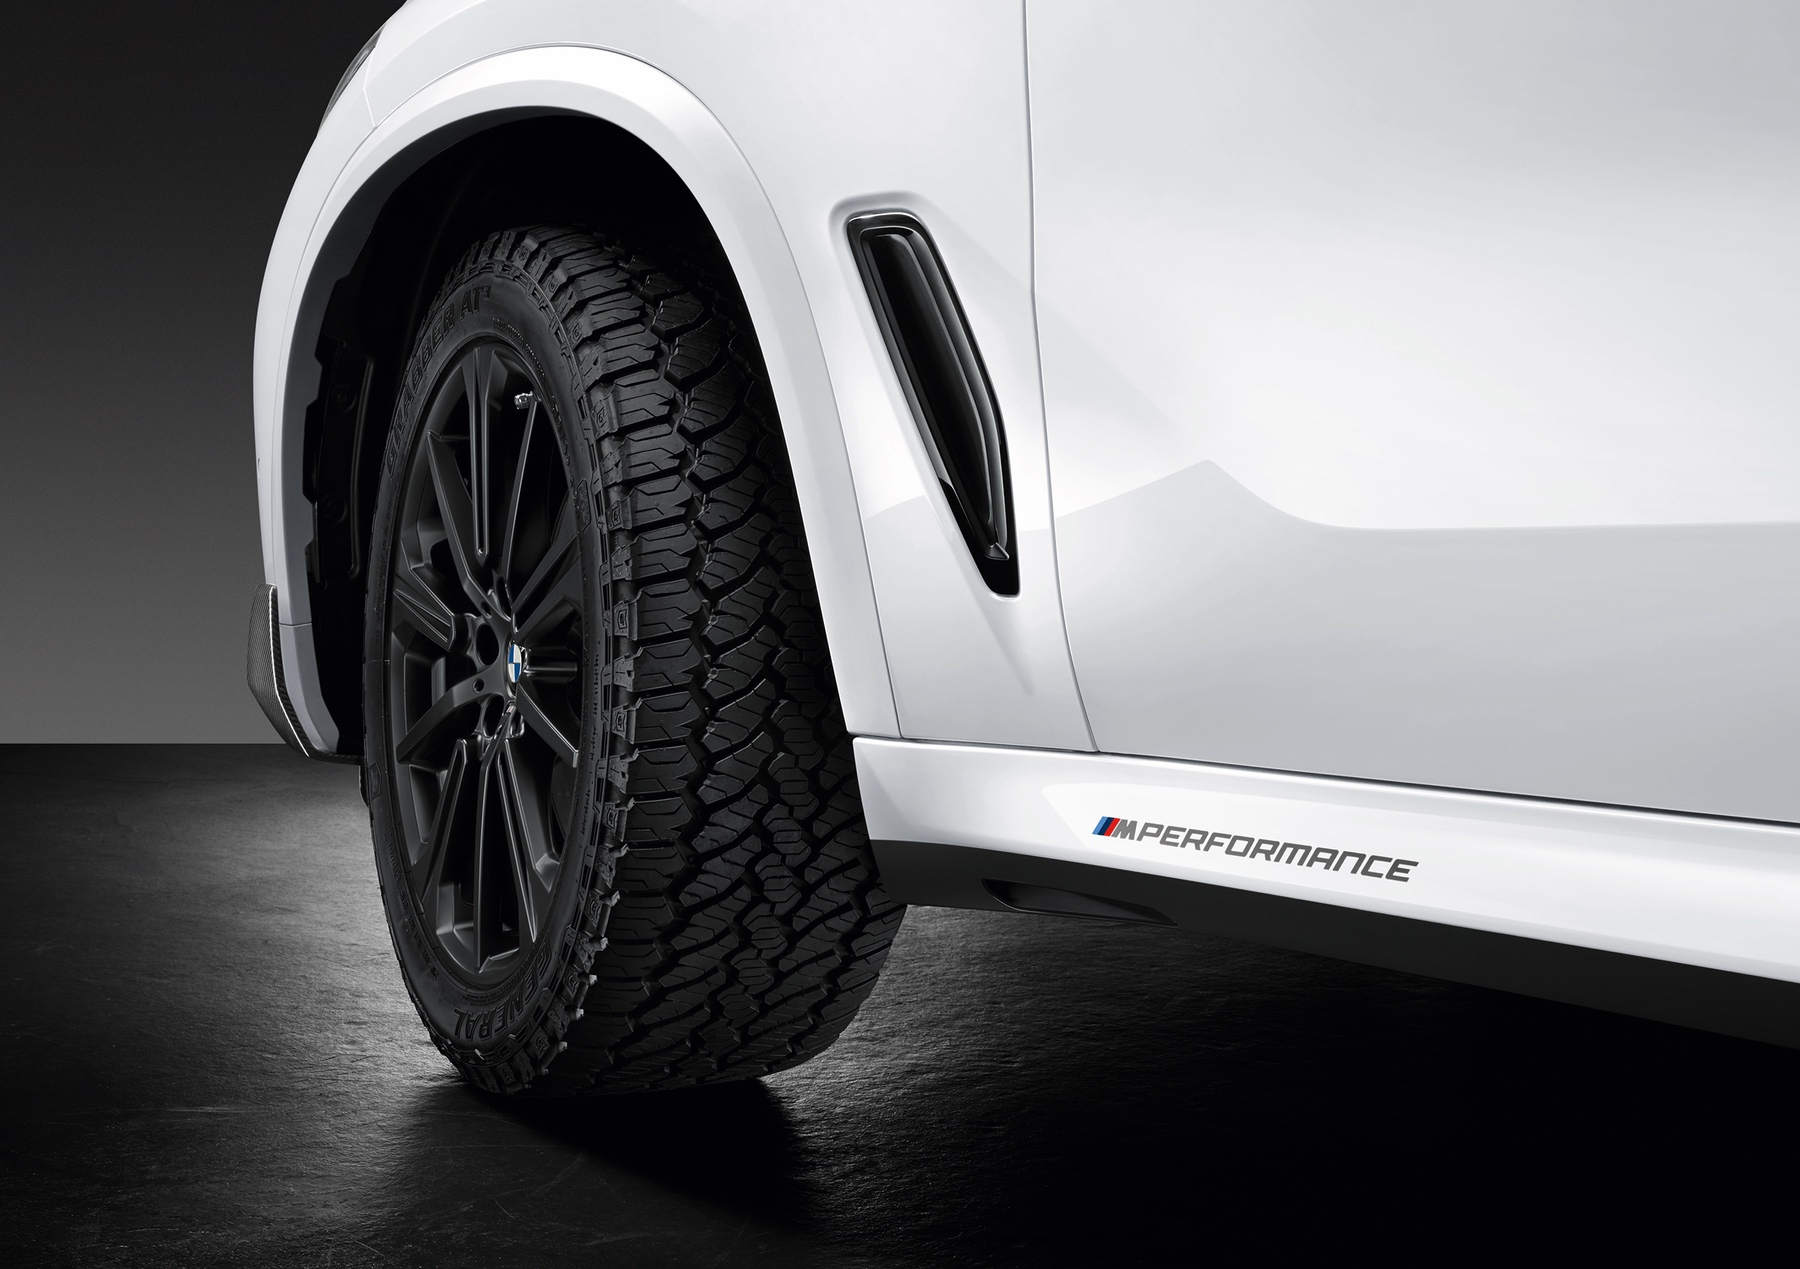 e9a2974b2b9 The 2019 BMW X5 M Performance Accessories Are Here - BimmerFile